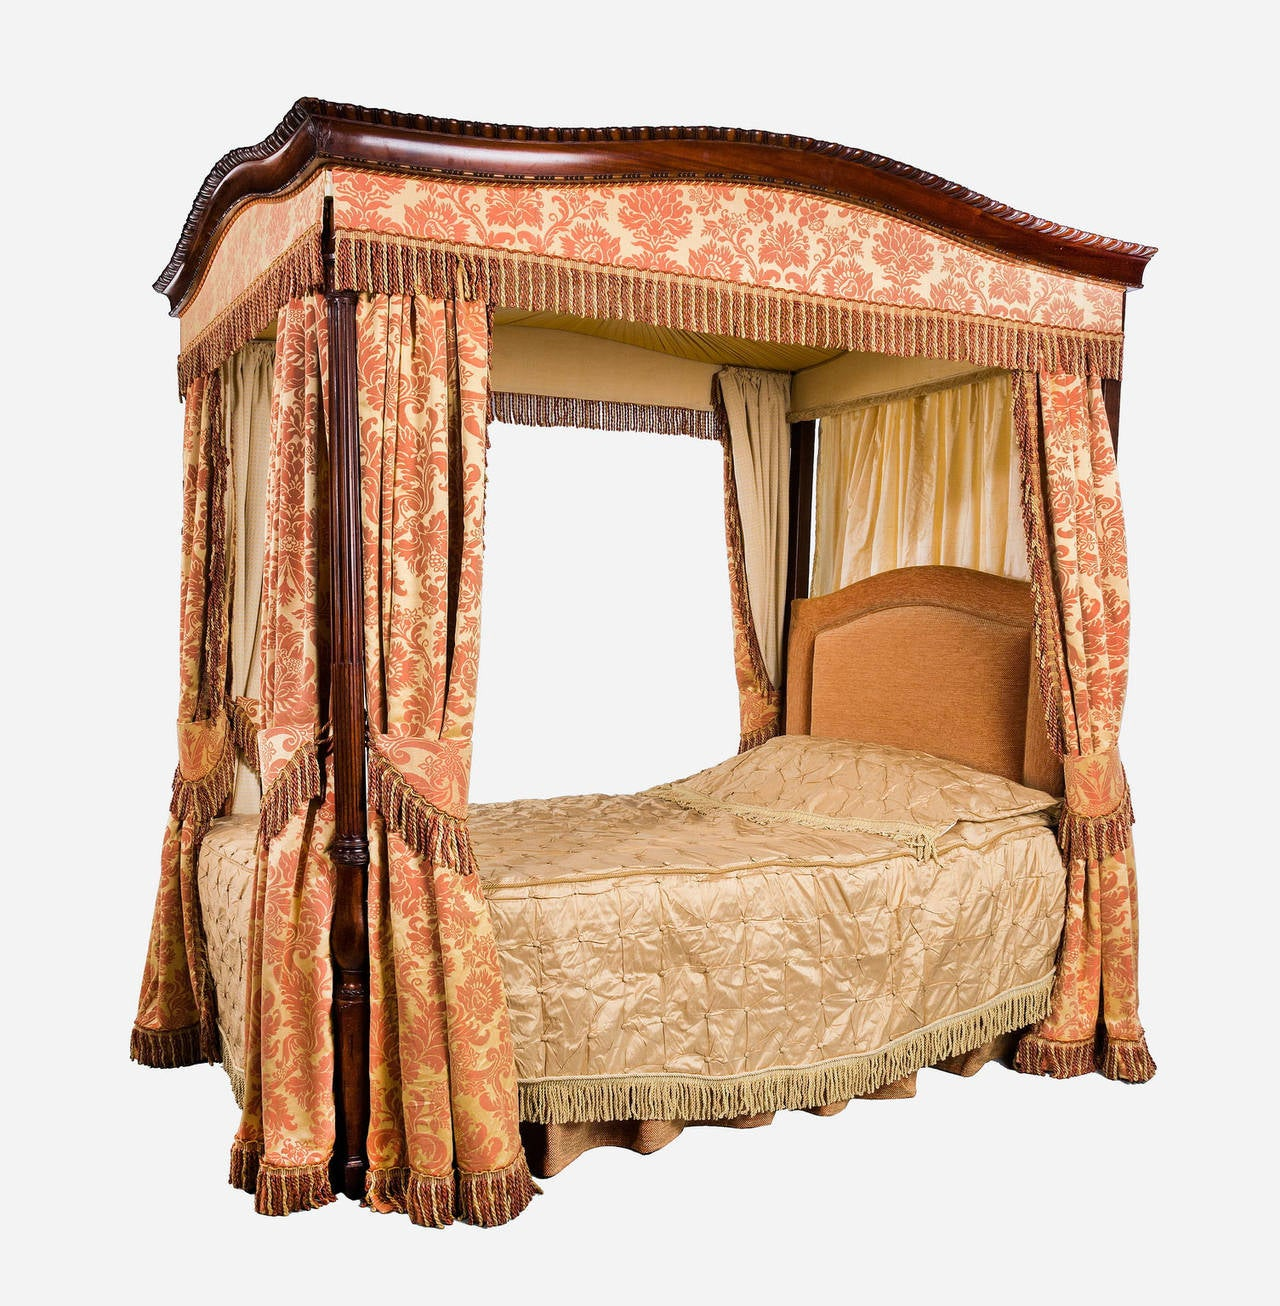 Four Poster Bed Early 20th Century Mahogany Frame Four Poster Bed For Sale At 1stdibs